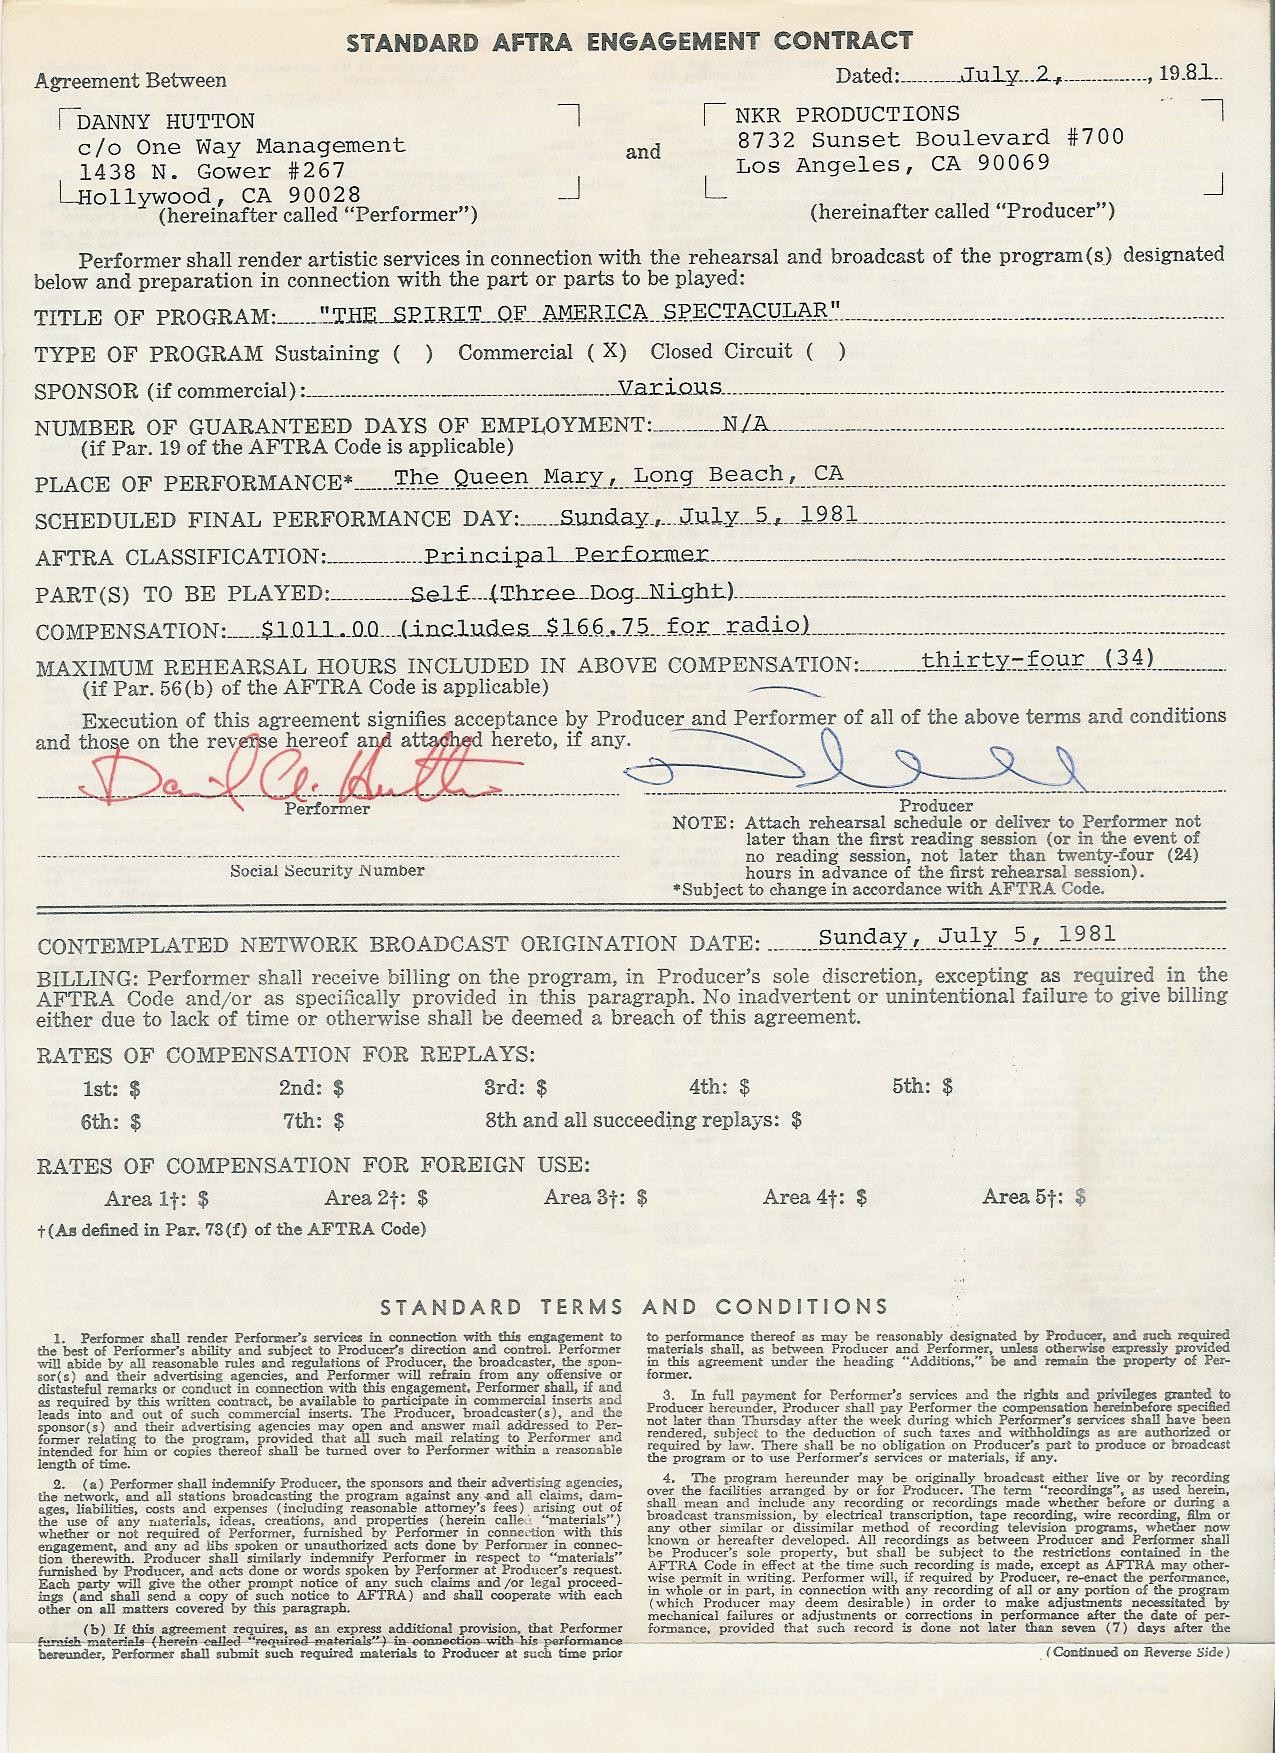 Danny Hutton Contract Page 1